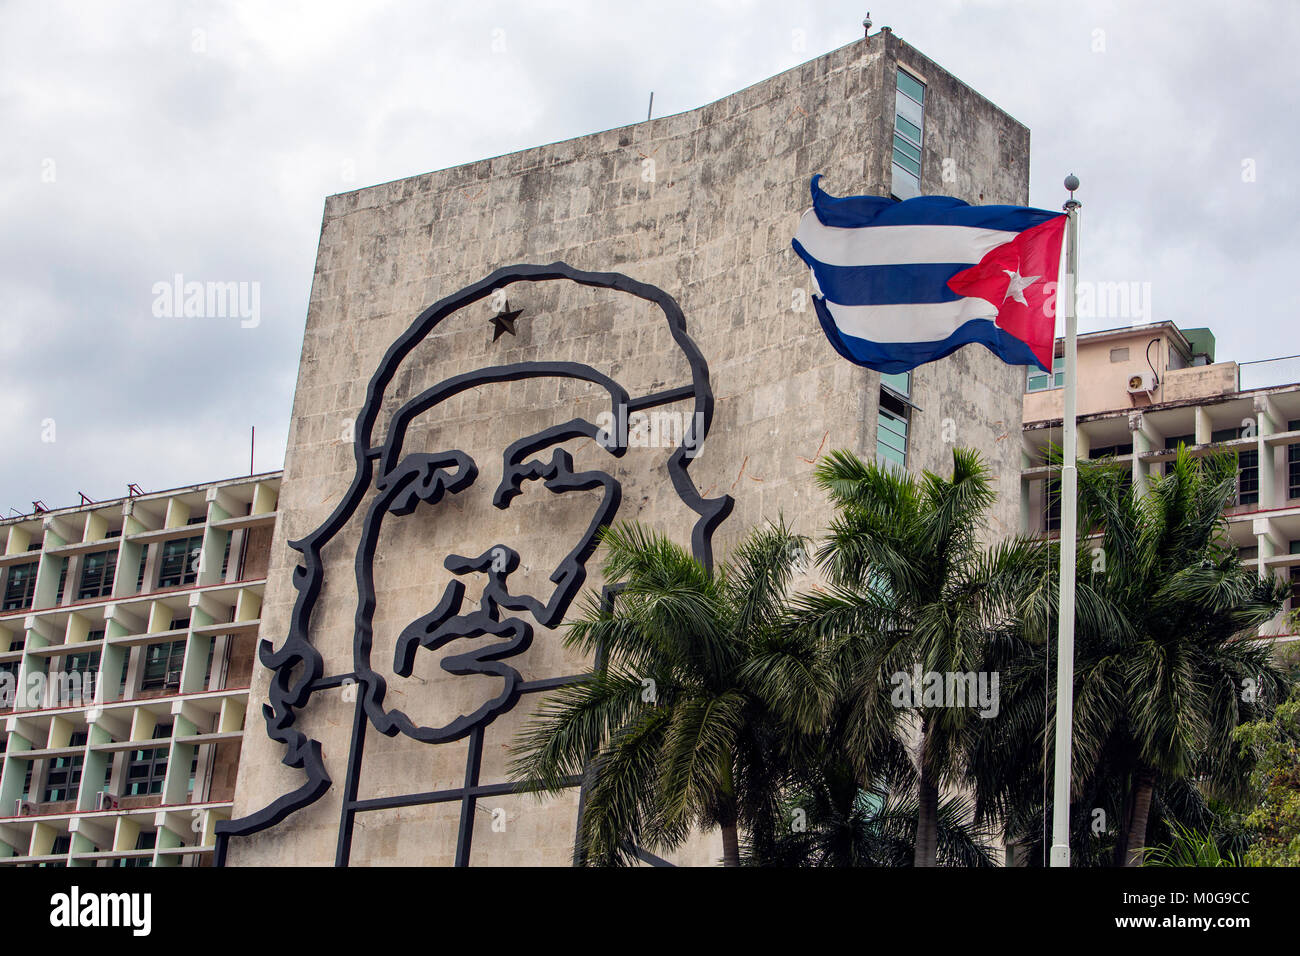 Cuba communist flag havana stock photos cuba communist for Ministerio del interior